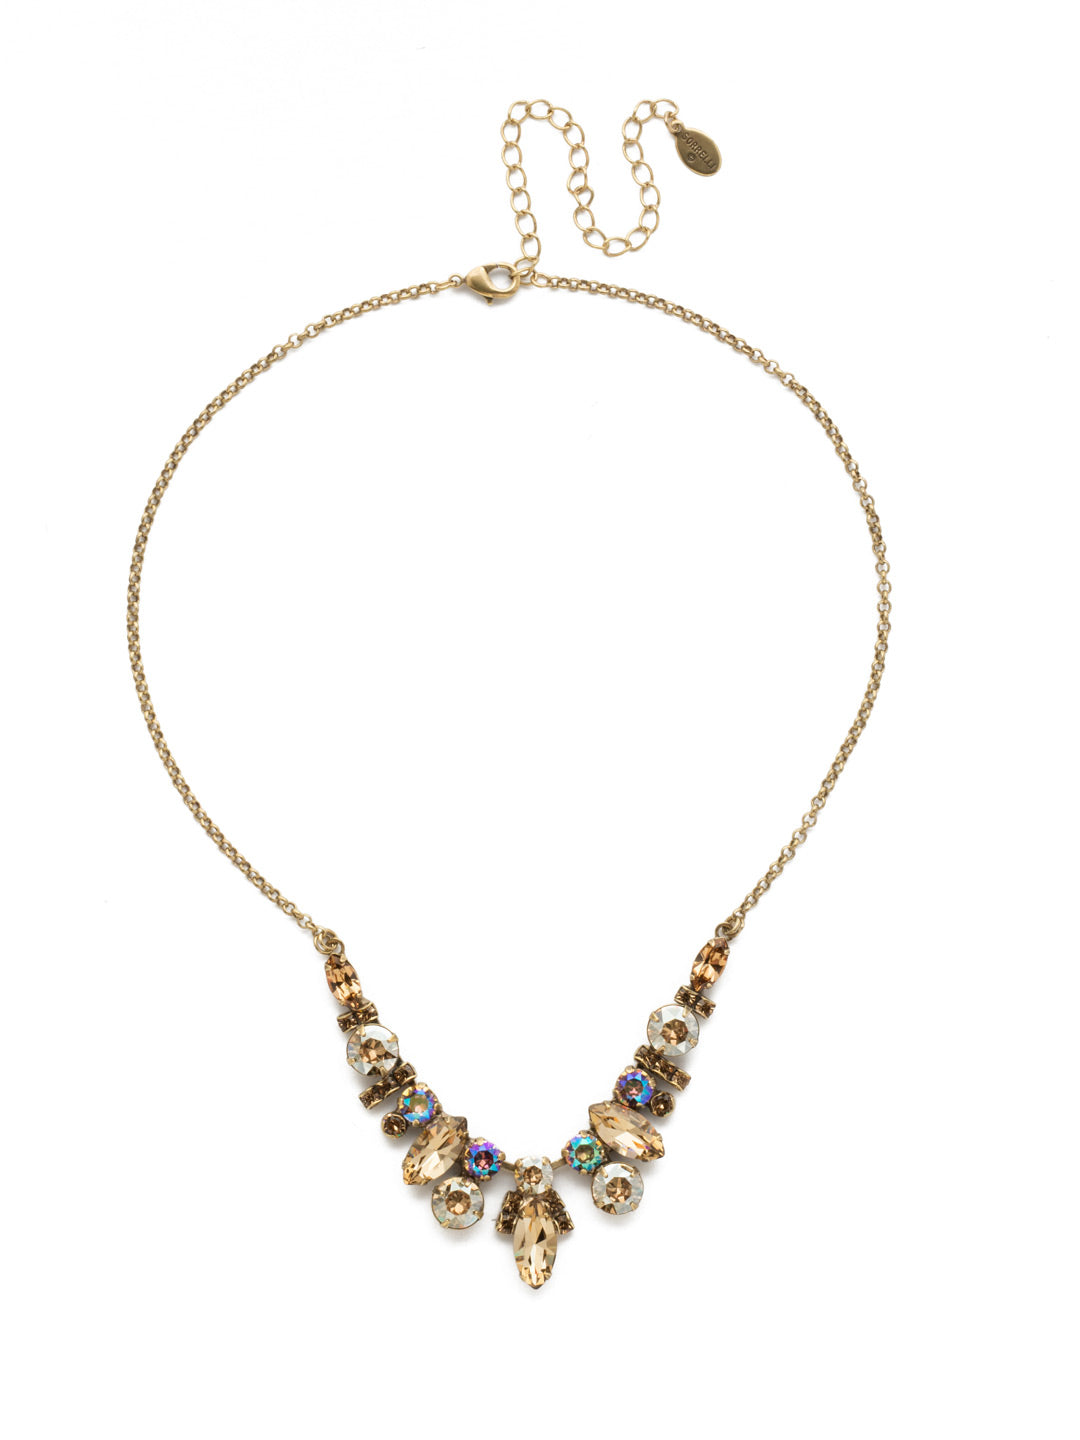 Noveau Navette Statement Necklace - NDG90AGNT